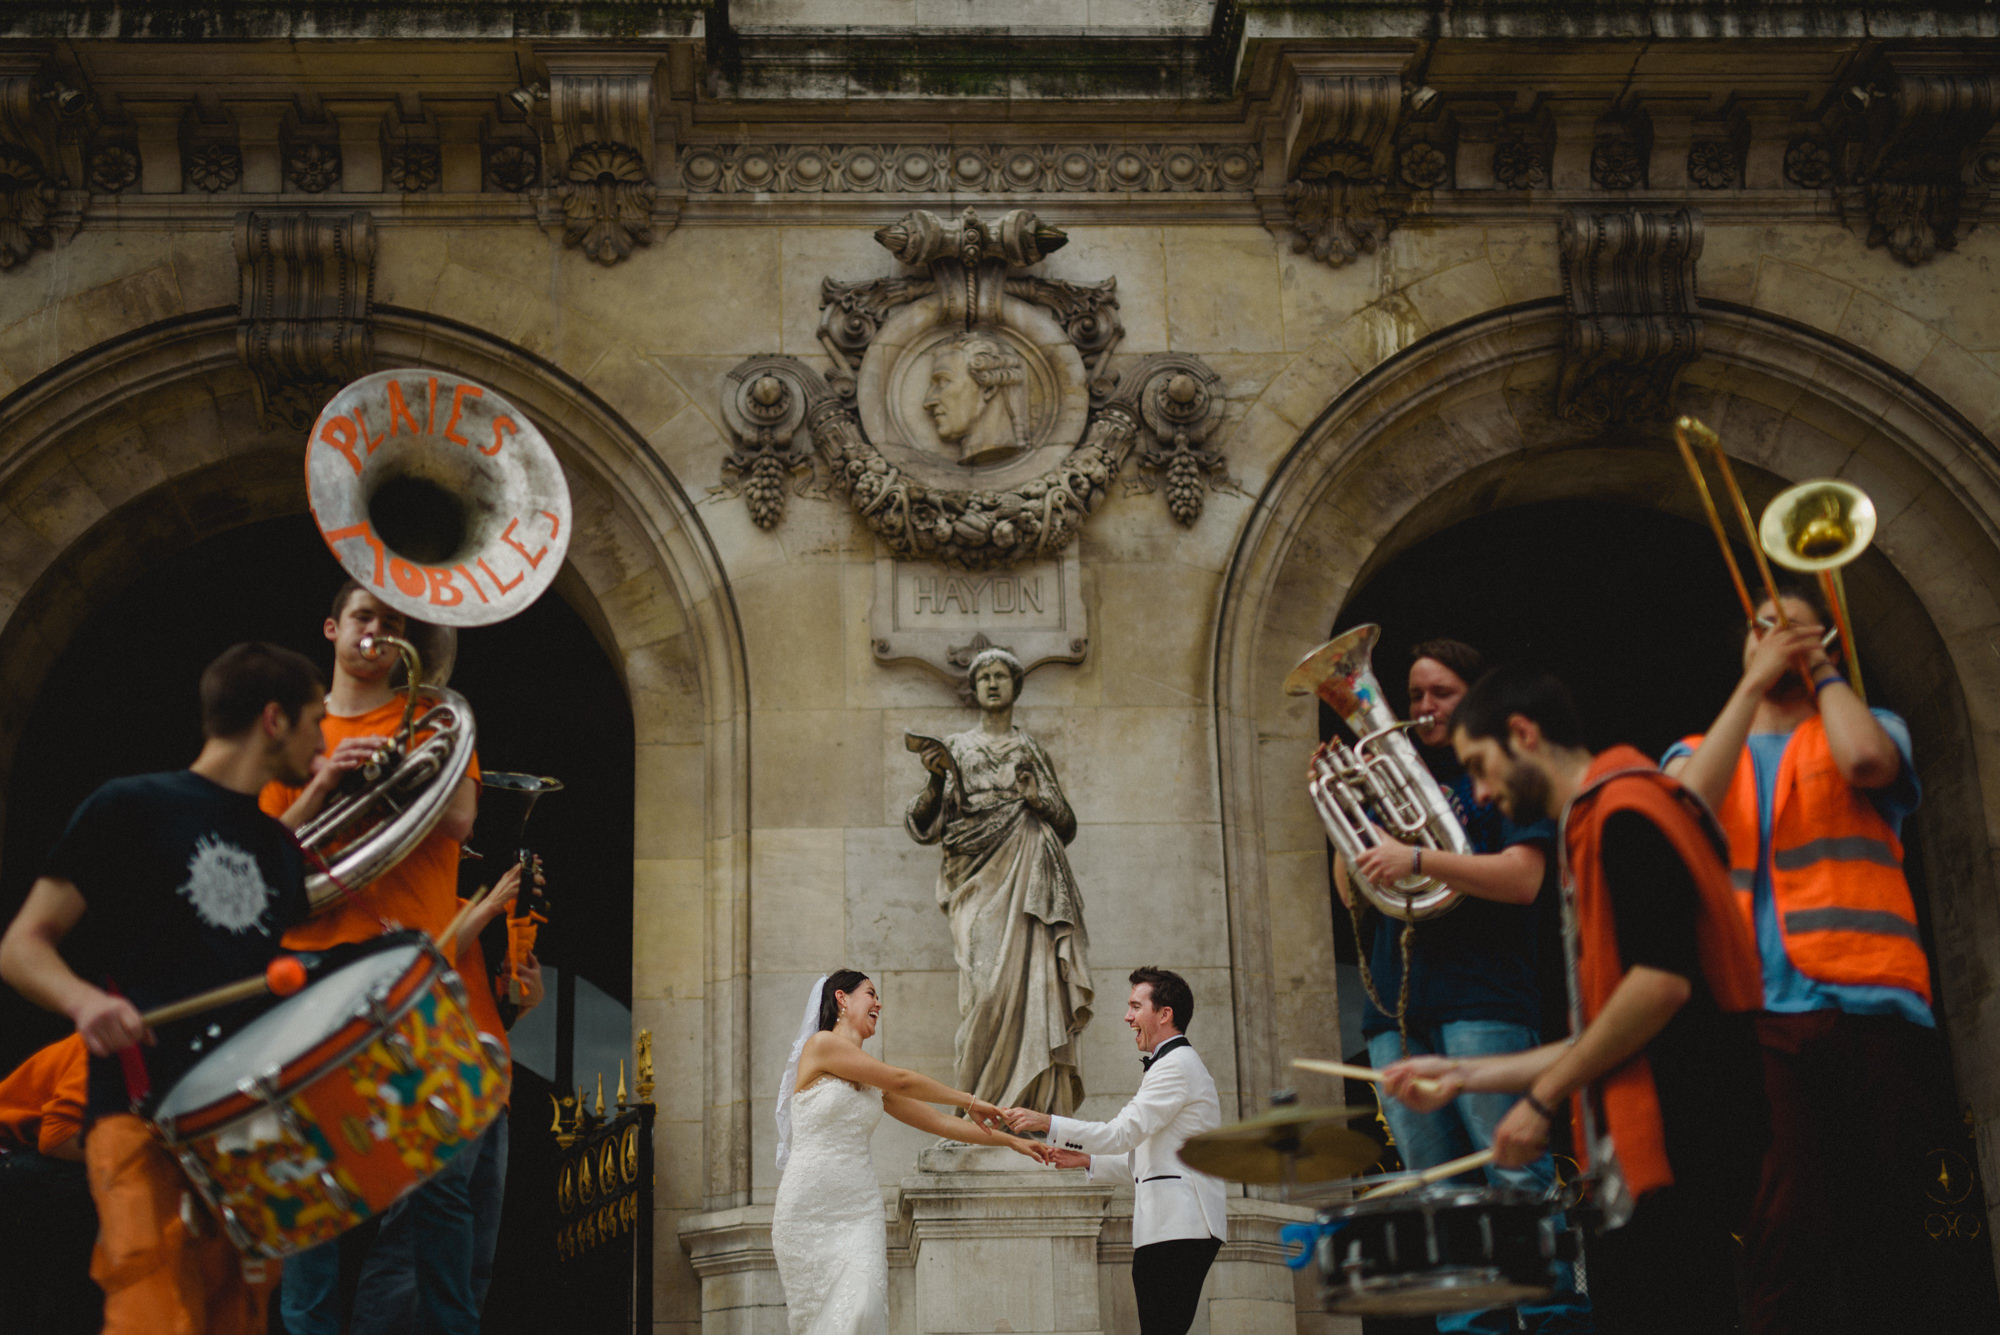 Couple dancing to brass band - photo by Fer Juaristi